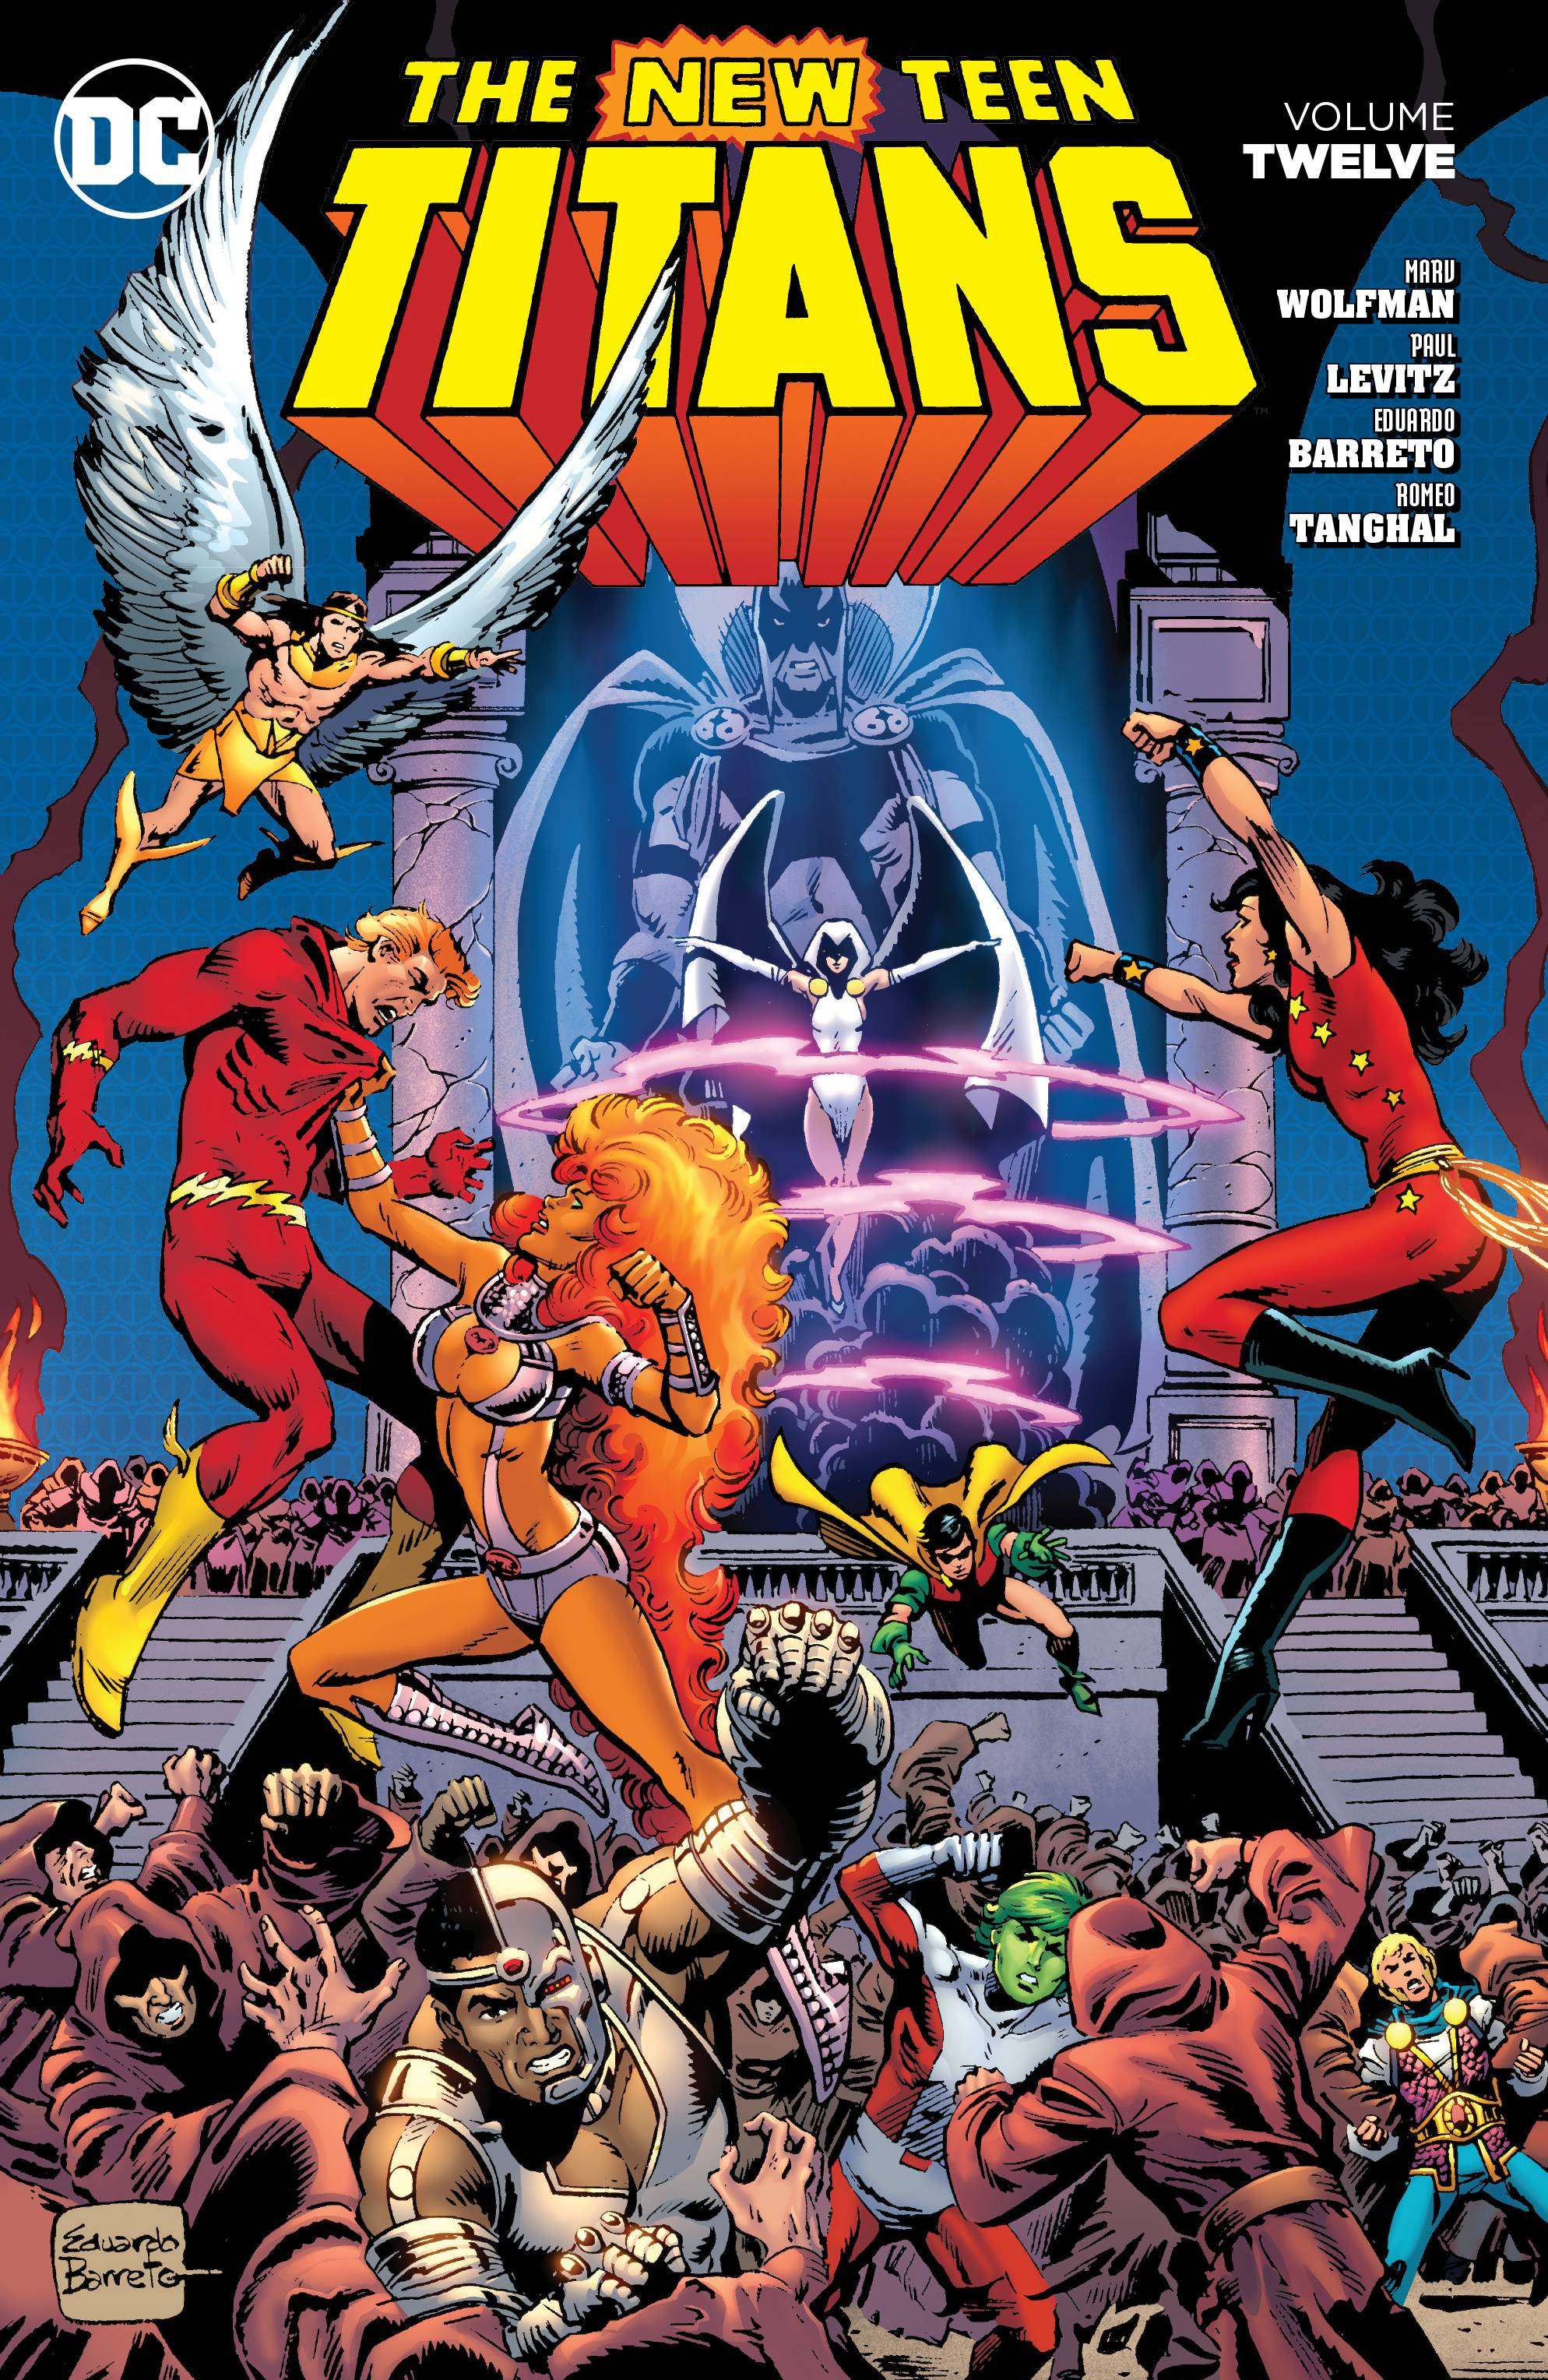 NEW TEEN TITANS TP VOL 12